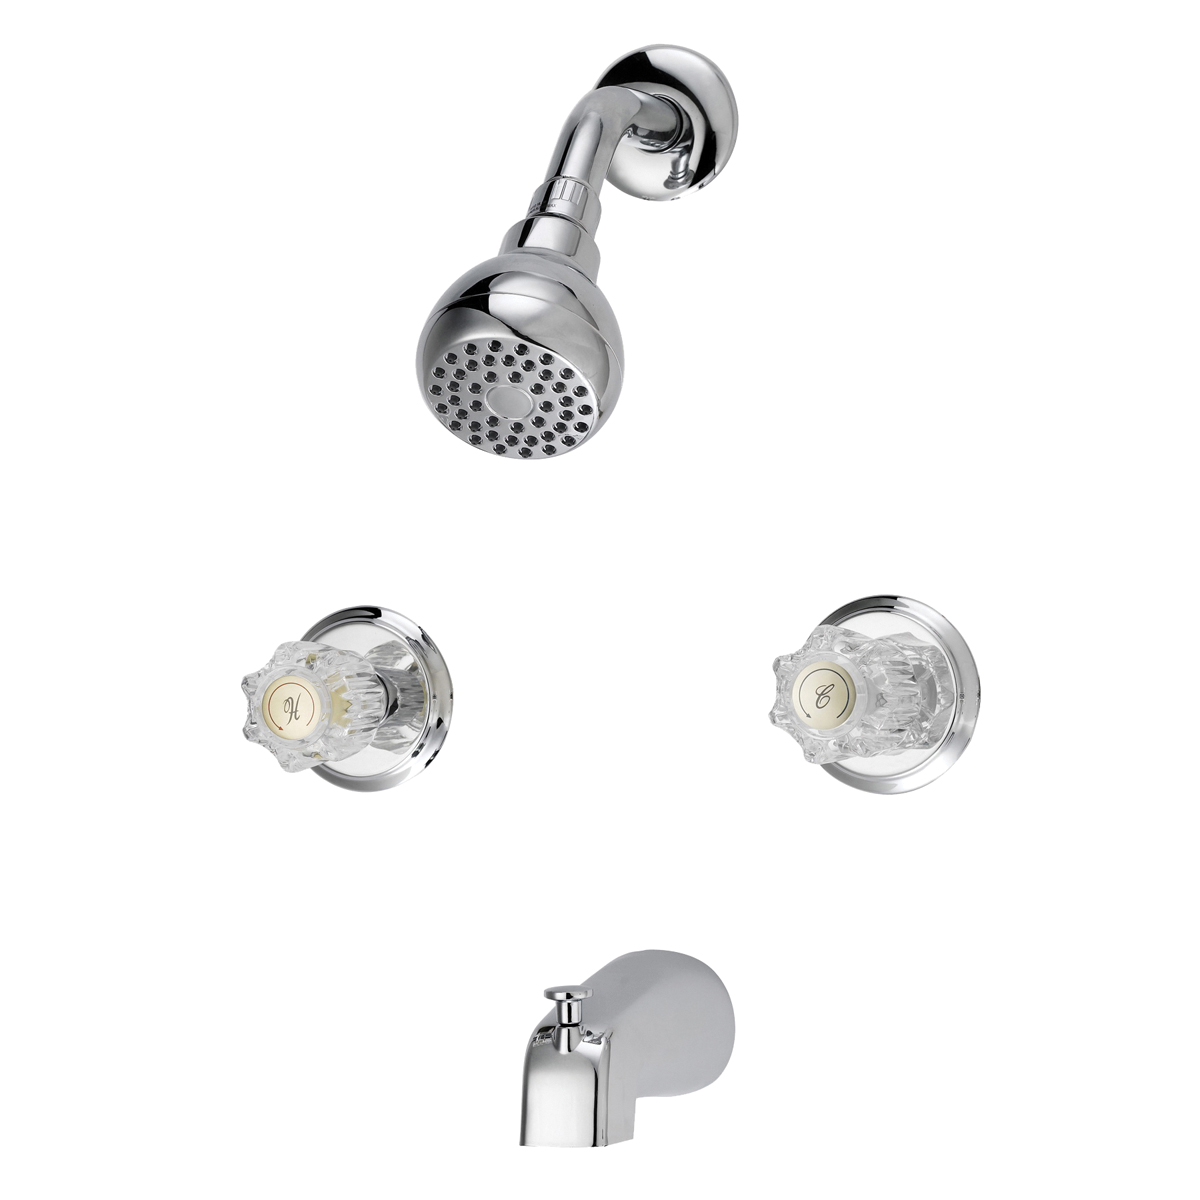 Picture of Boston Harbor GU-TQOB016CP Tub and Shower Faucet, Fixed Mount Showerhead, 1.75 gpm Showerhead, 1 Spray Settings